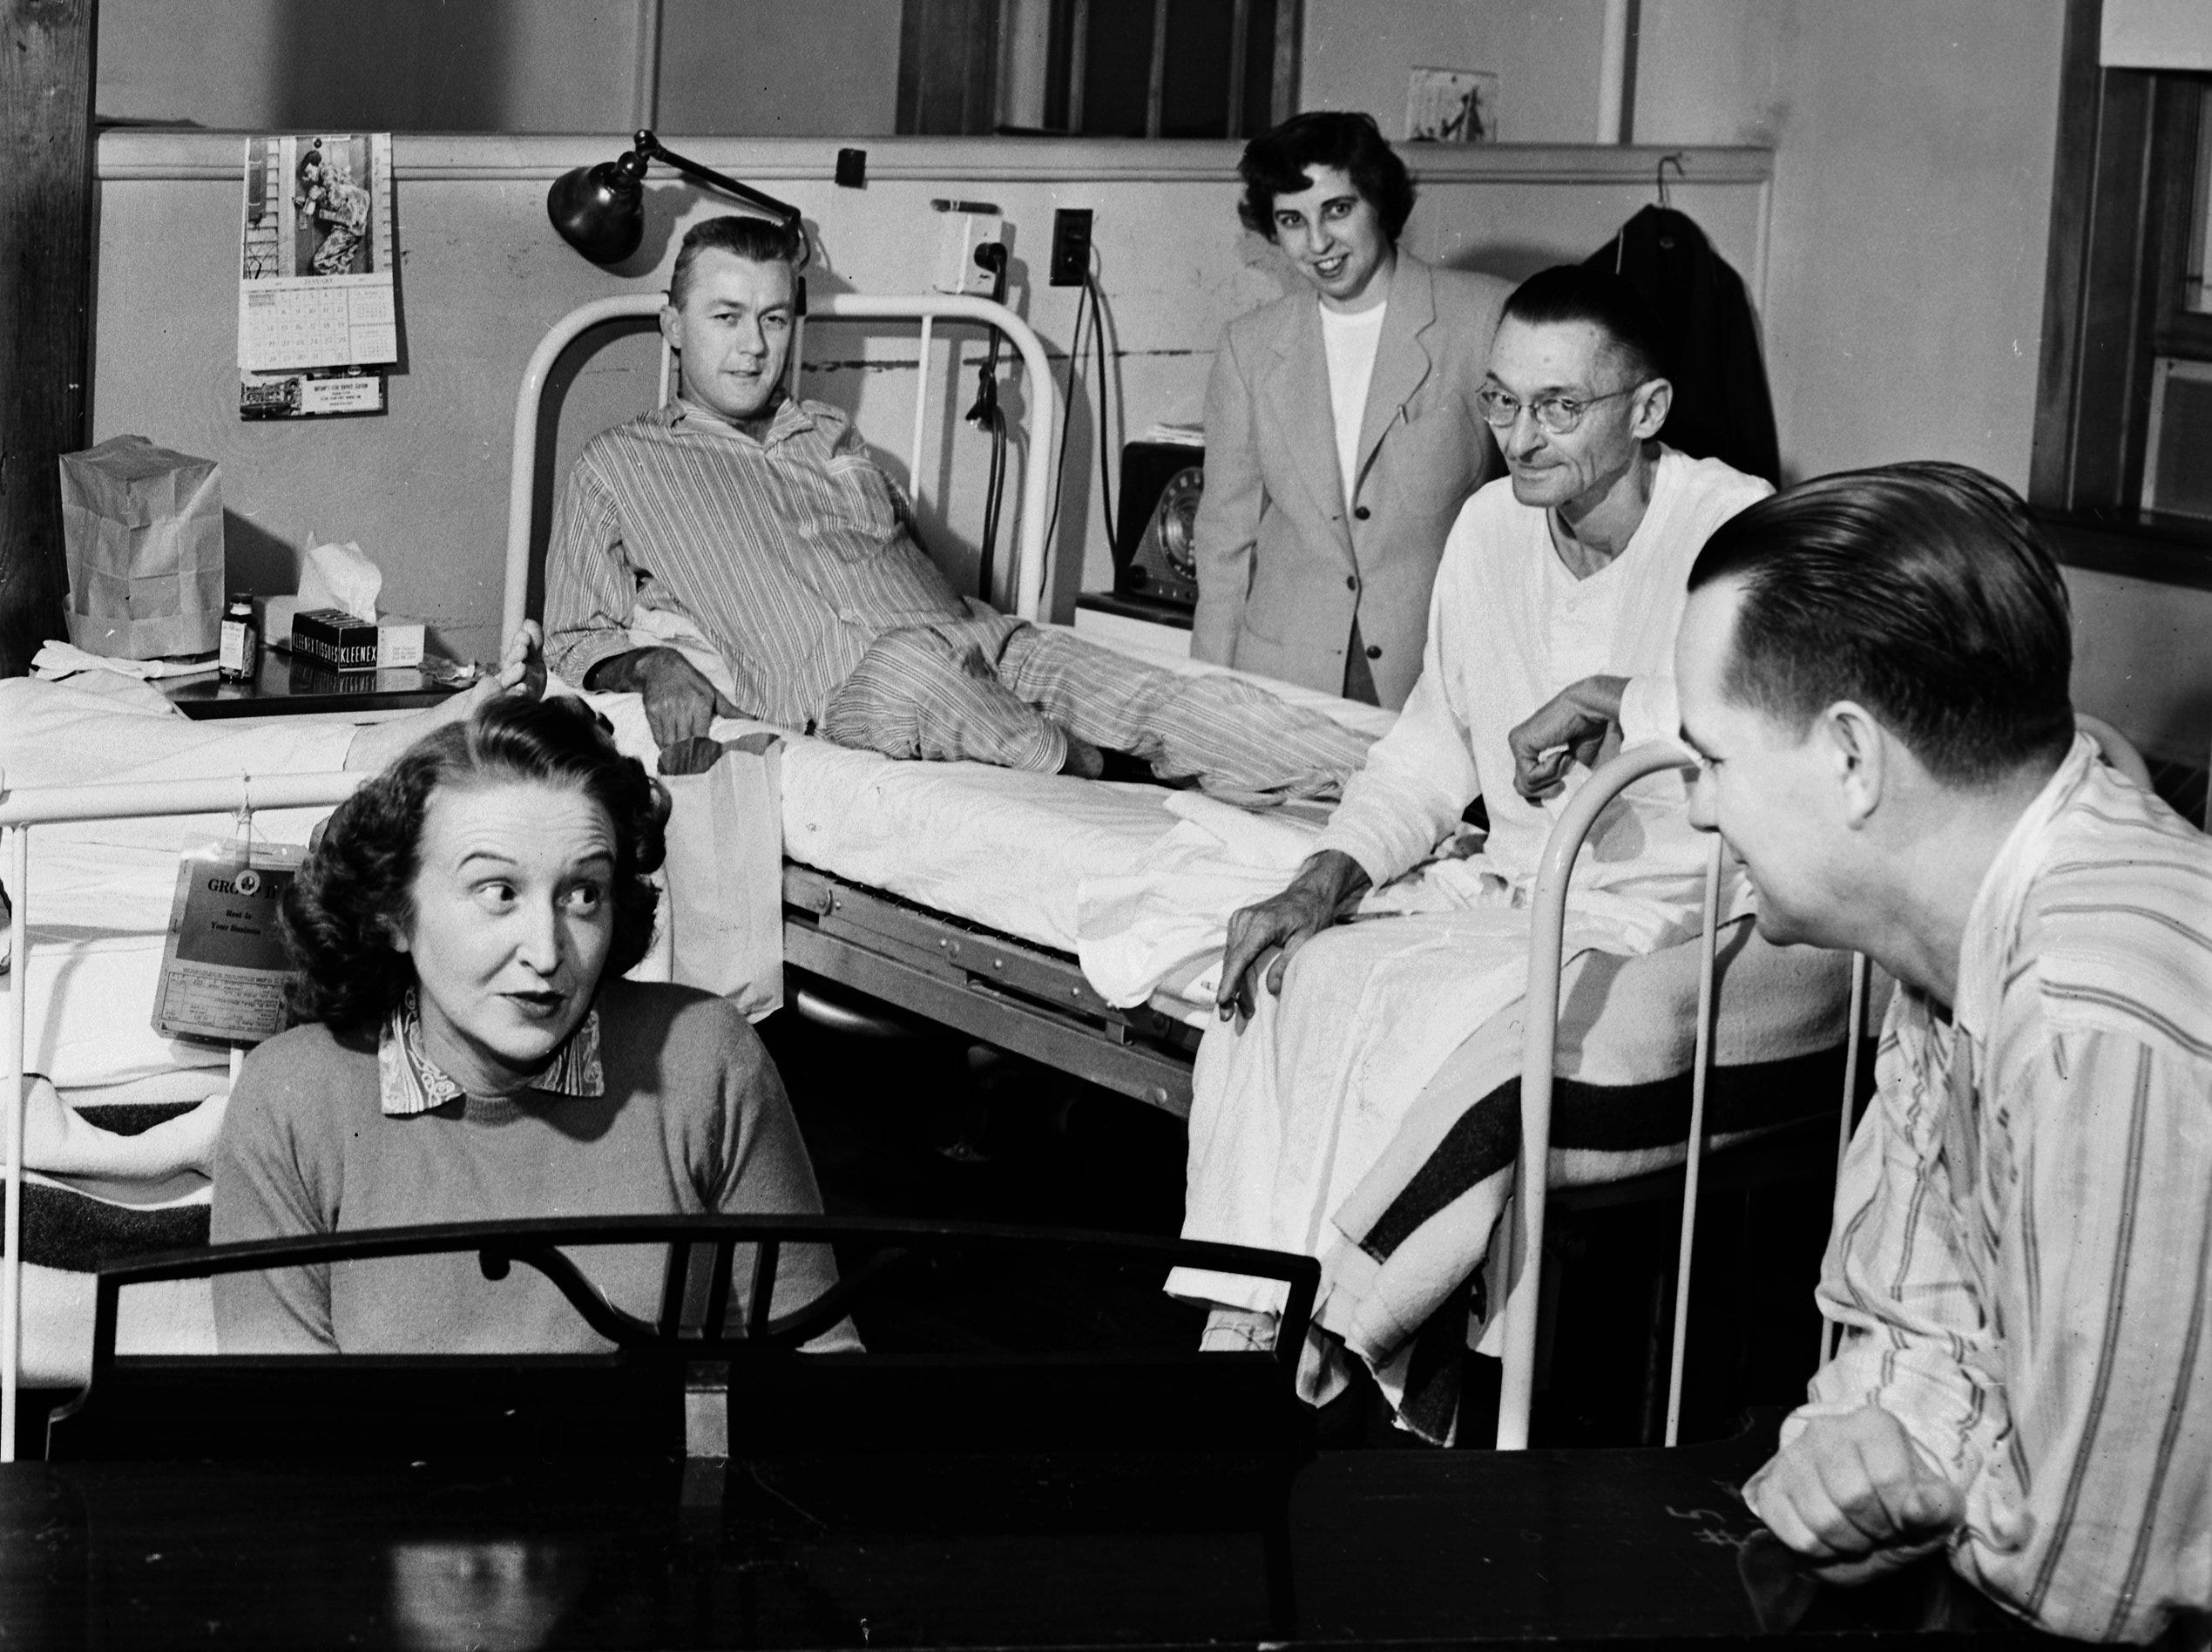 Mrs. Ernestine Hall (Left) of 1351 Linden, and the portable piano behind which she is seated, have become familiar and well-loved fixtures at Kennedy Veterans Hospital where Mrs. Hall has entertained patients with her wide repertoire of songs for 10 years.  Enjoying one of her musical interludes in a hospital ward in January 1952 are (From Second Left) Woodrow McClure  of Paragould, Ark., World War II Army veteran; Miss Genevieve Antonelli of 1328 South Barksdale, Miss Hall's supervisor; P.B. Wonsey of Wichita, Kan., World War I Army veteran and Alvin E. Branch, Air Force veteran from Union City, Tenn.